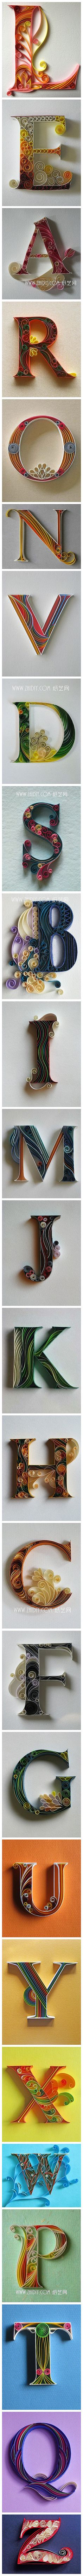 Paper Letters- Sorry about the annoyingly long pin and it leads to nothing but this picture, but I love quilling and these are gorgeous- Jenn